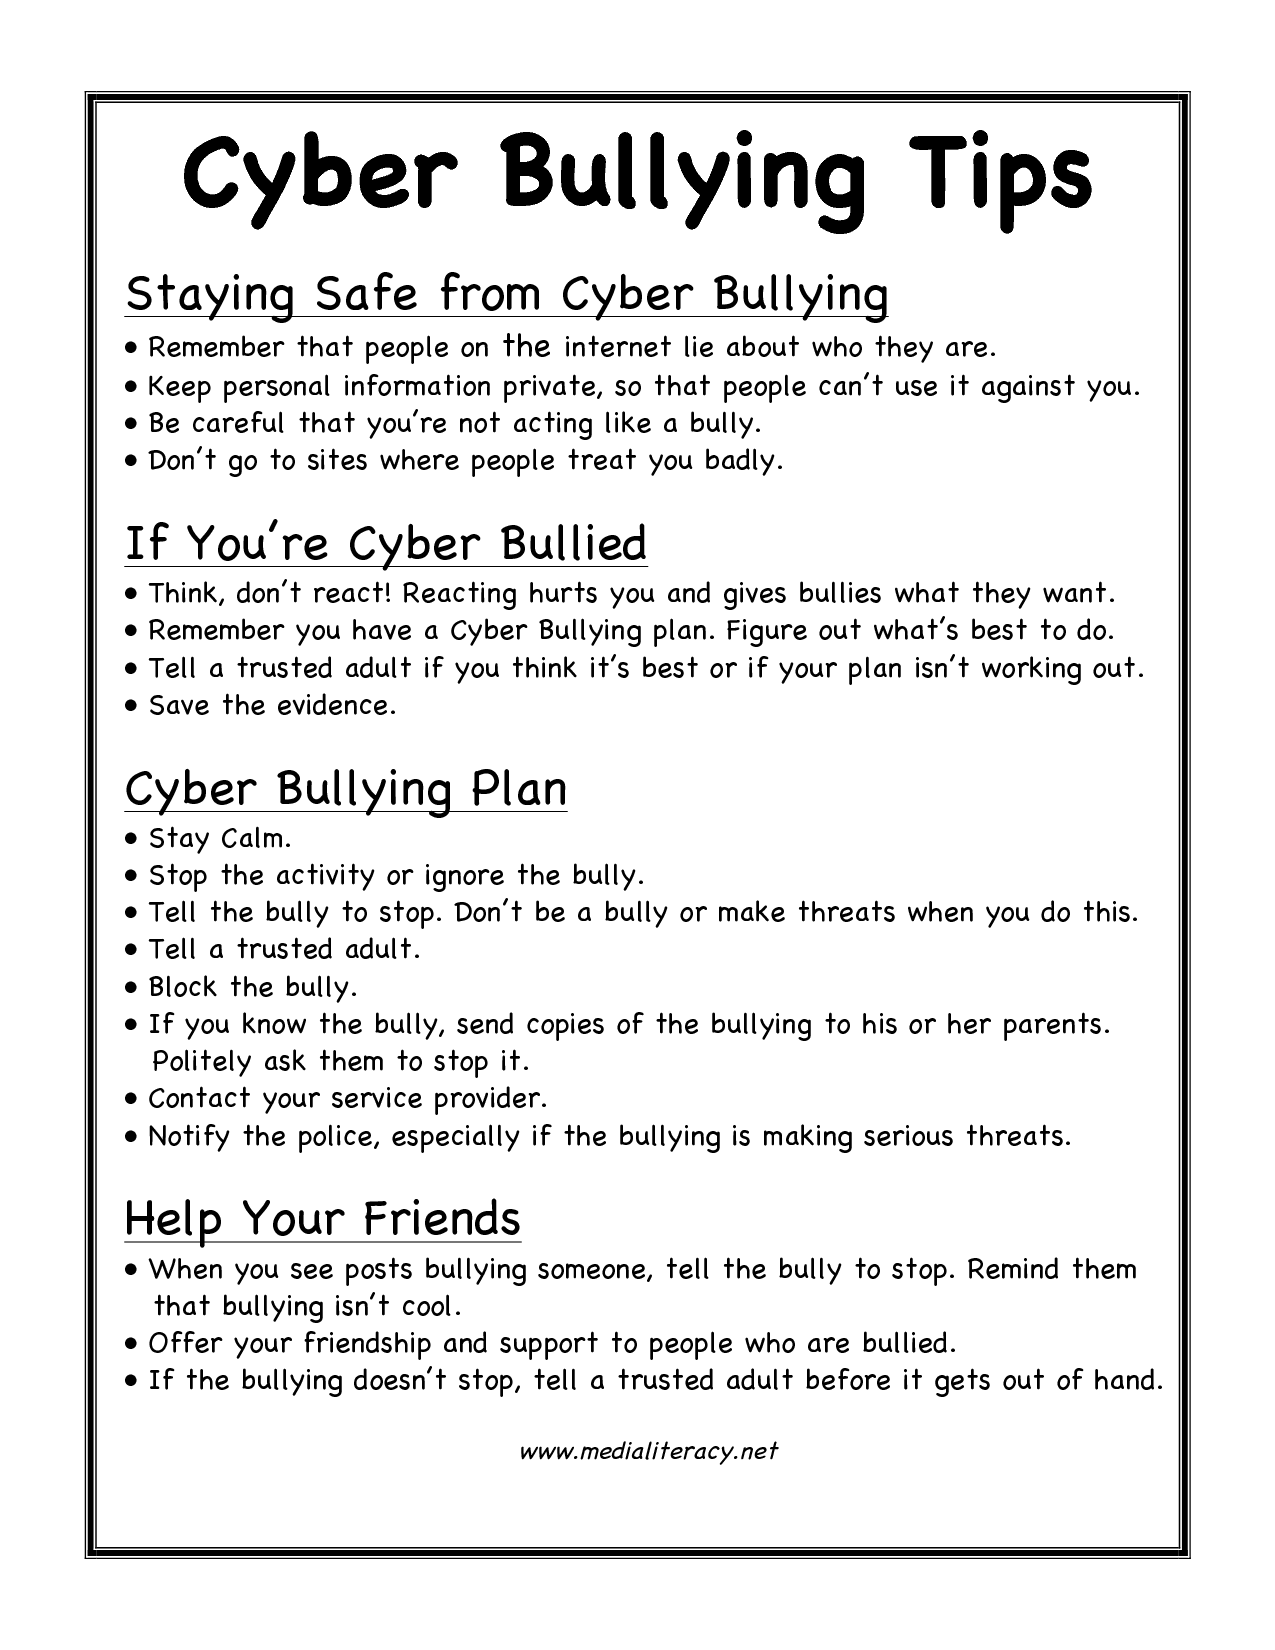 Worksheets Cyber Bullying Worksheets just what is the ideal self defense gadget to use when walking cyberbullying poster giving tips how recognize cyberbullying